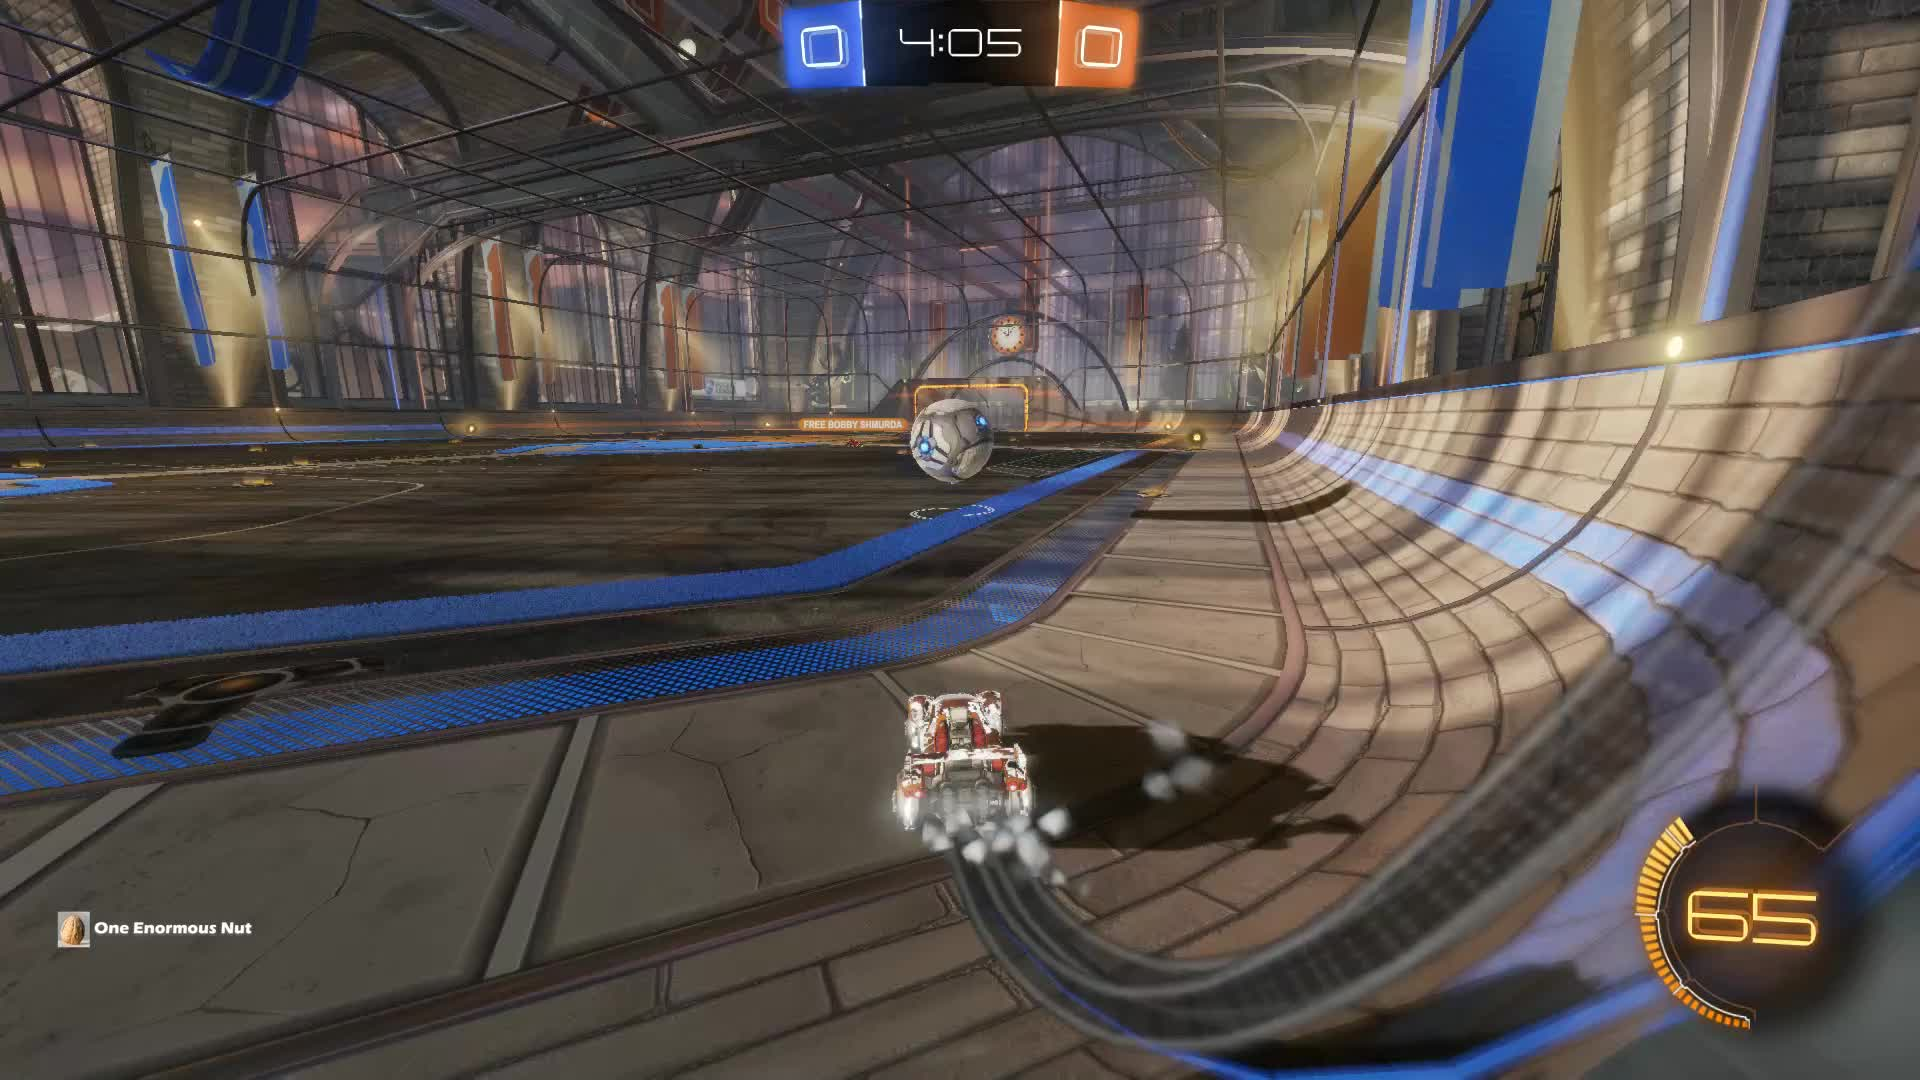 Gif Your Game, GifYourGame, Goal, One Enormous Nut | TTV, Rocket League, RocketLeague, Goal 1: One Enormous Nut | TTV GIFs